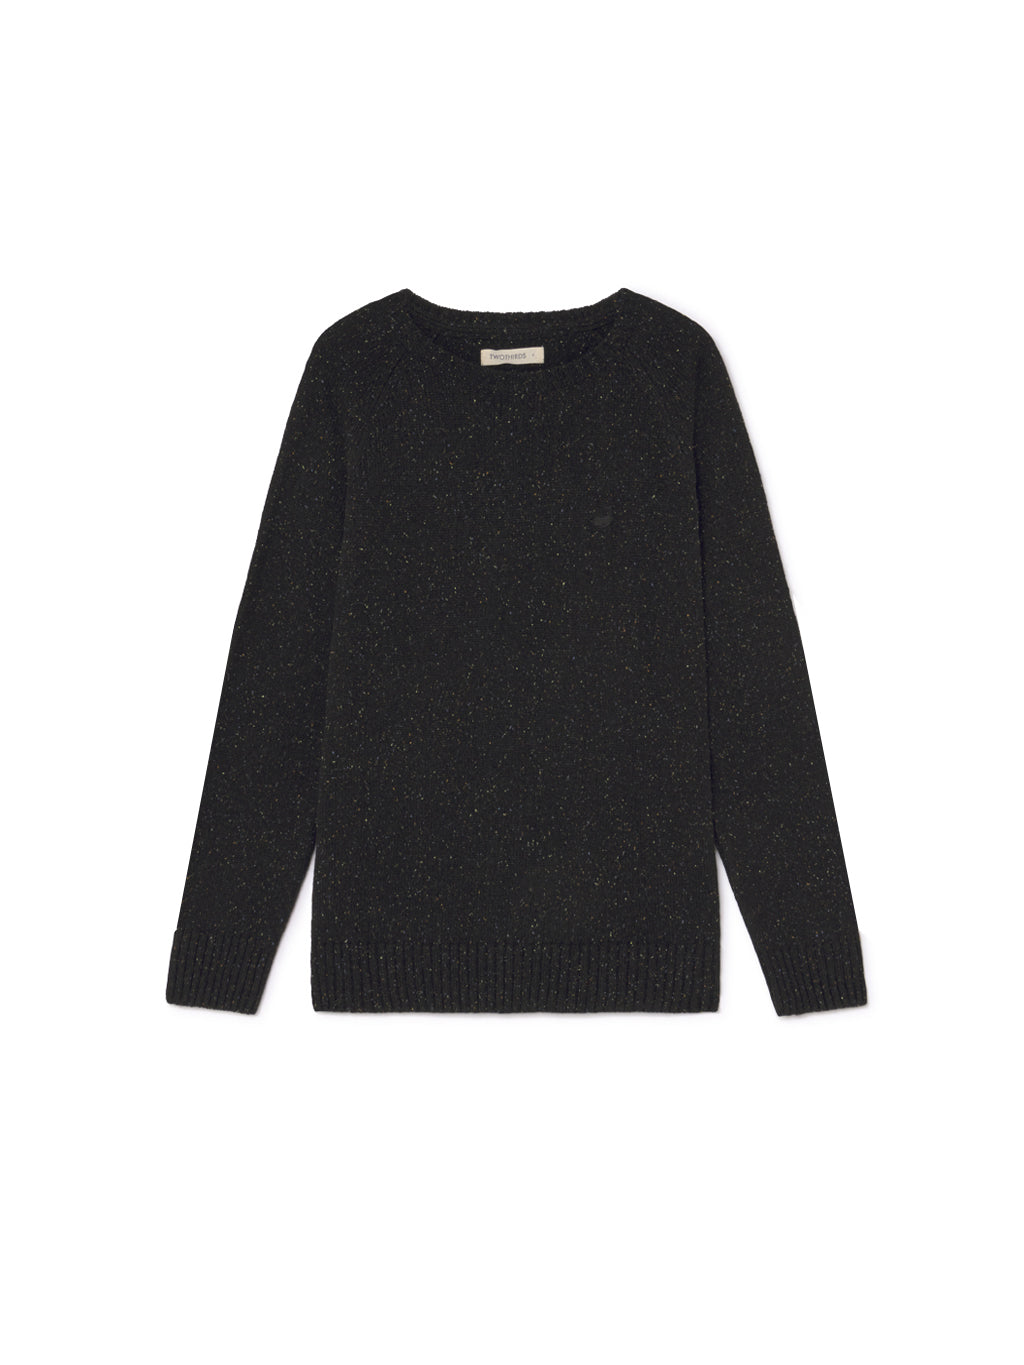 TWOTHIRDS Mens Knit: Anaa - Black front